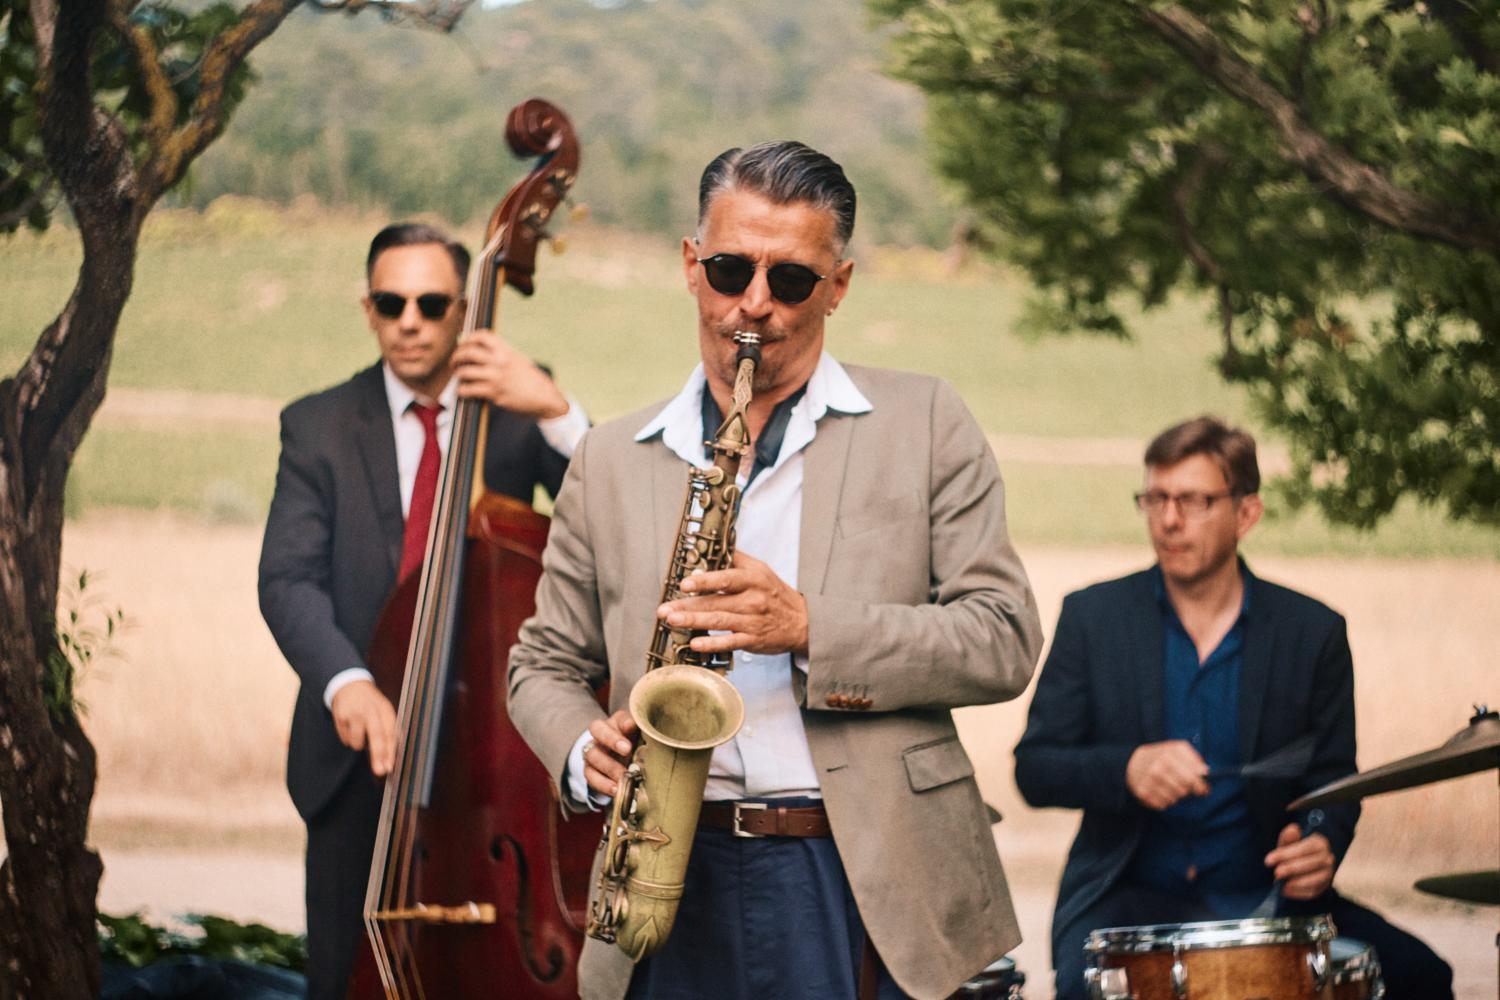 A saxophone player performs outdoors with band at Chateau Val Joanis